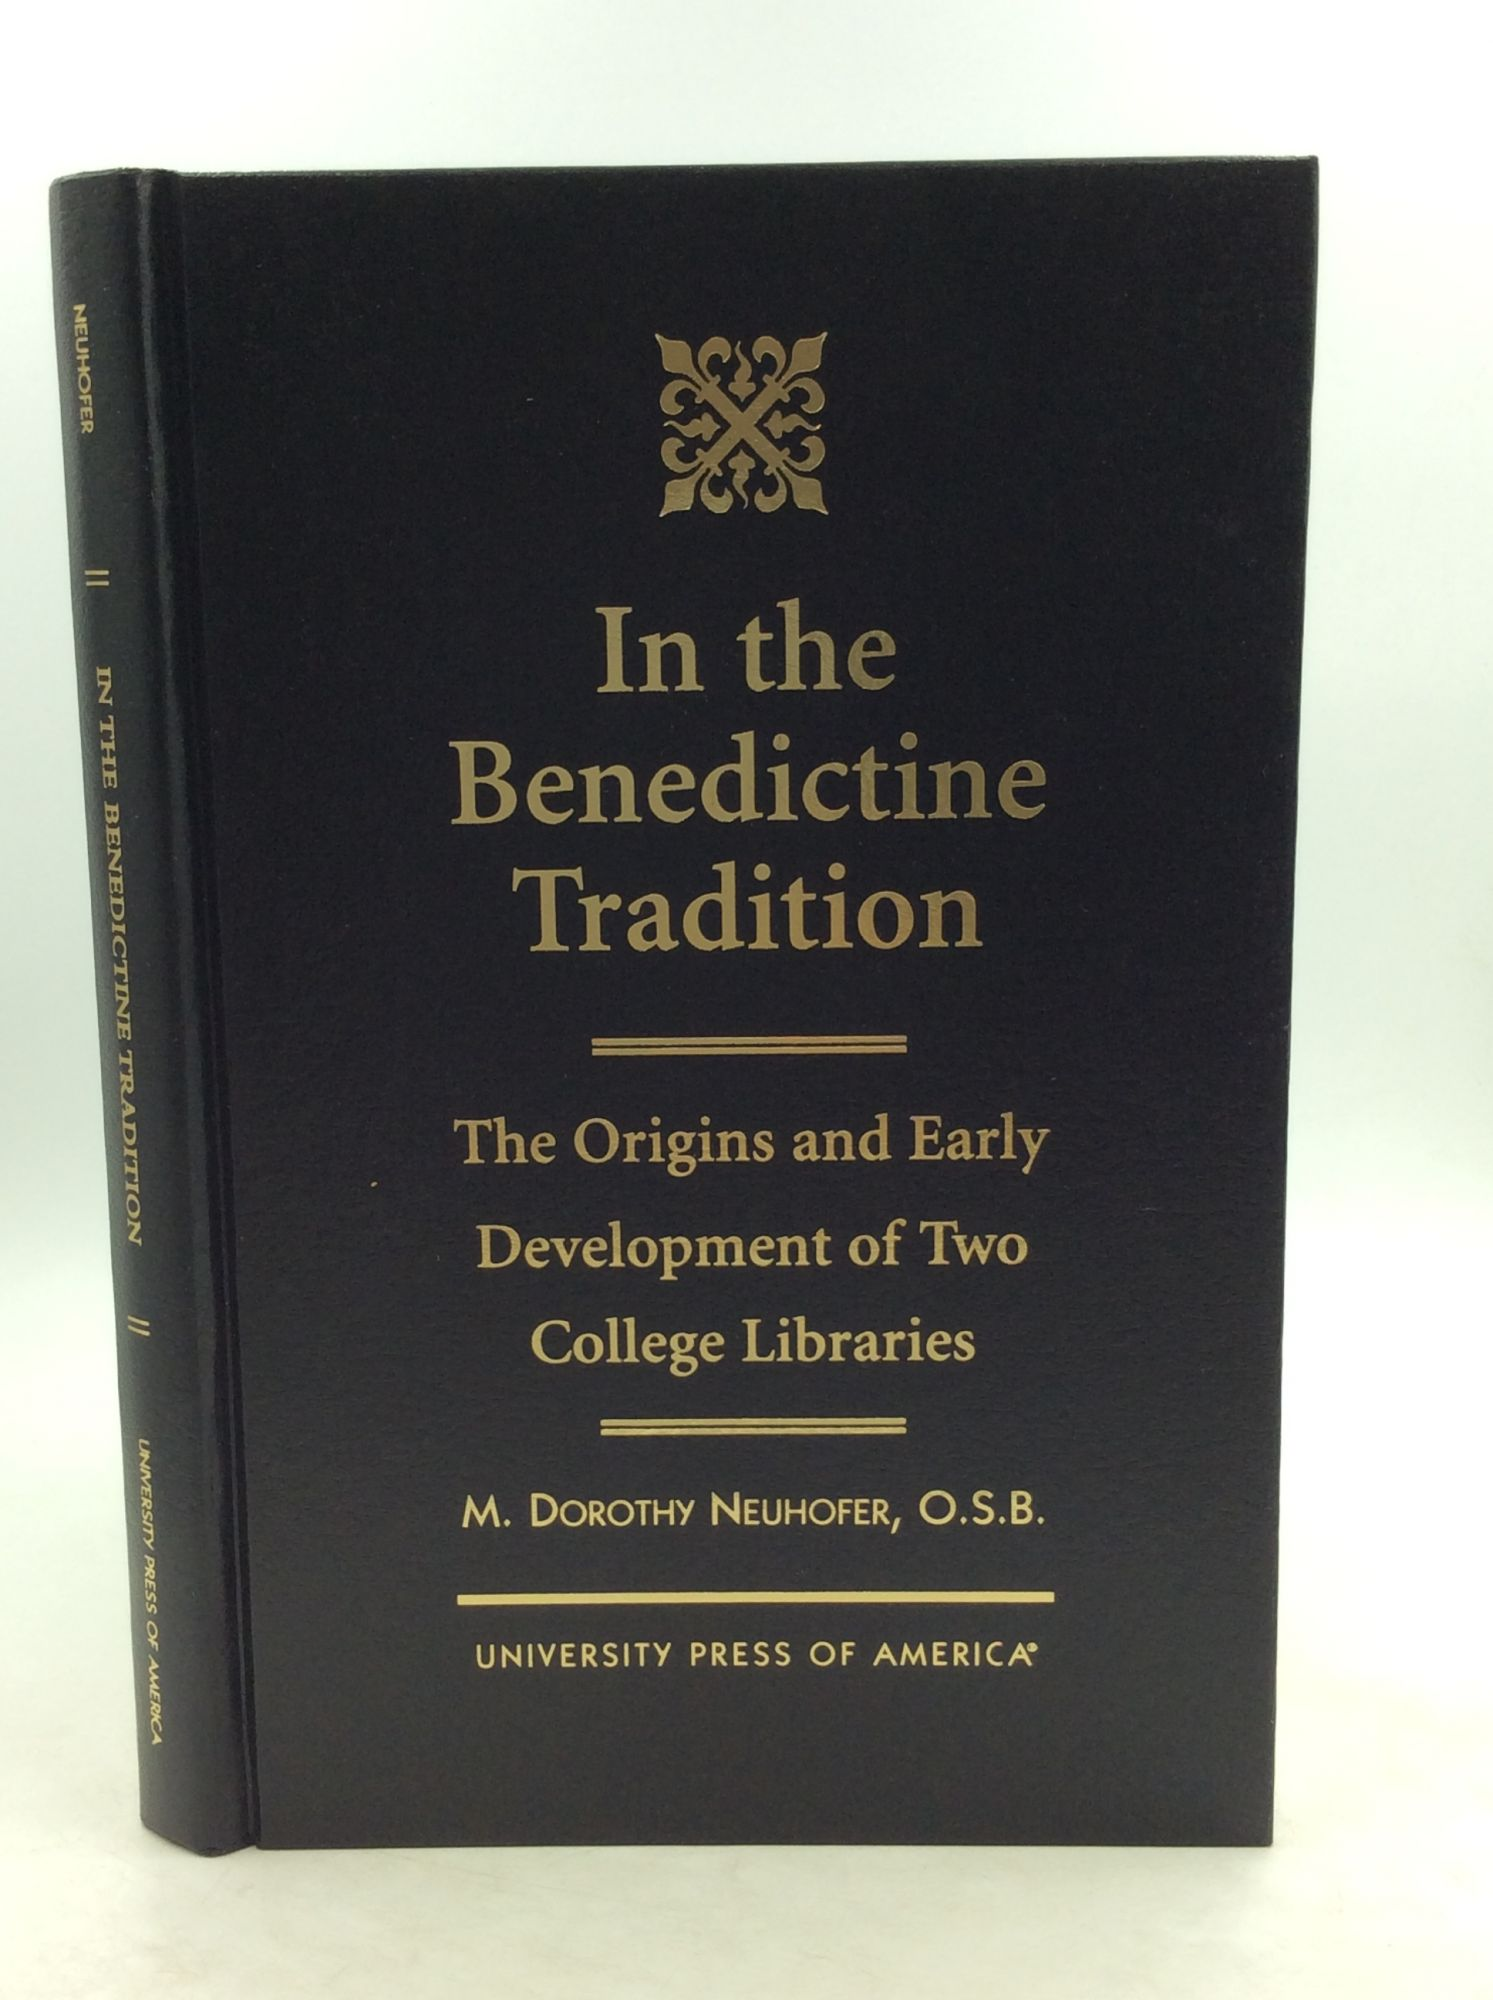 M. DOROTHY NEUHOFER - In the Benedictine Tradition: The Origins and Early Development of Two College Libraries